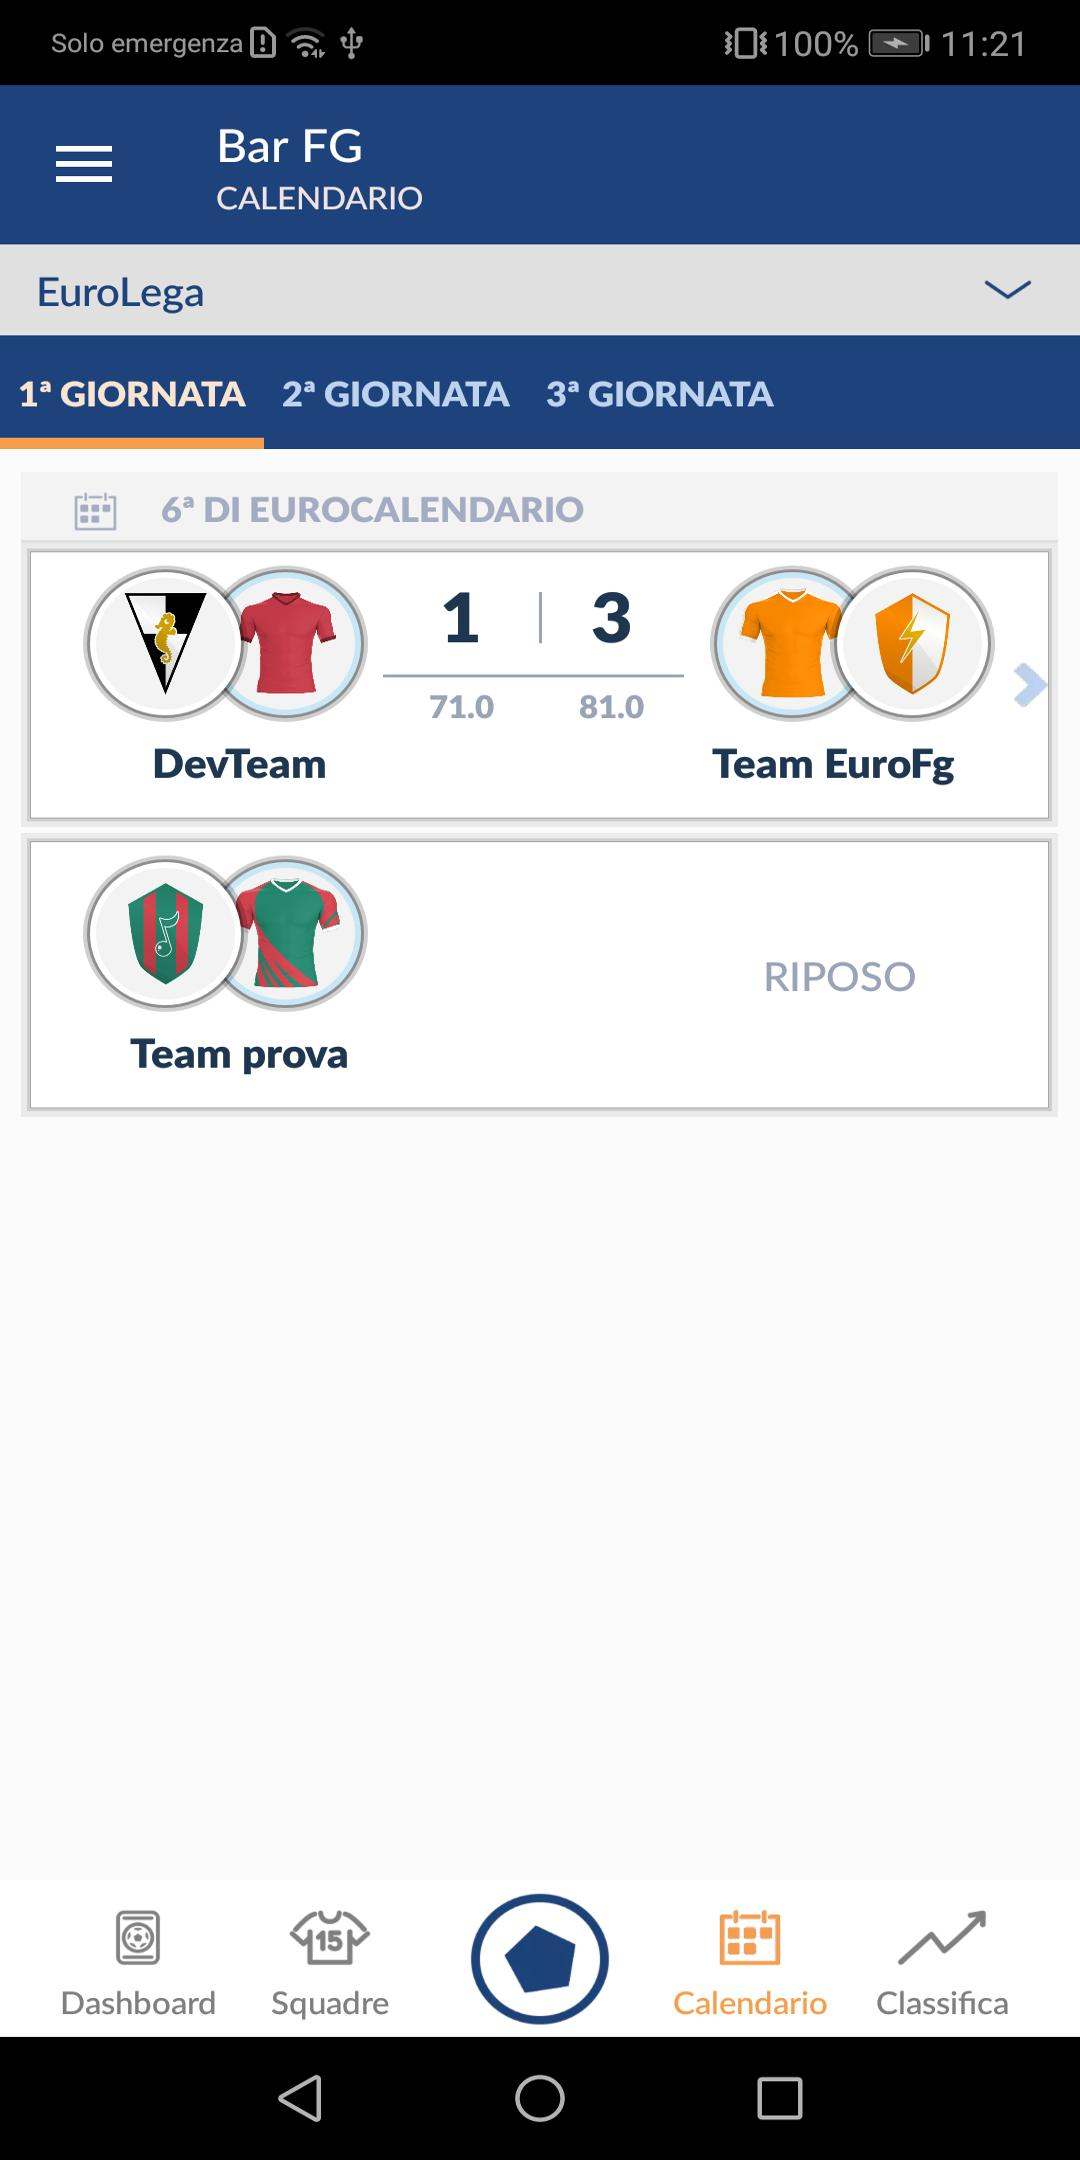 Calendario Euroleghe Fantagazzetta.Euroleghe Fantacalcio For Android Apk Download